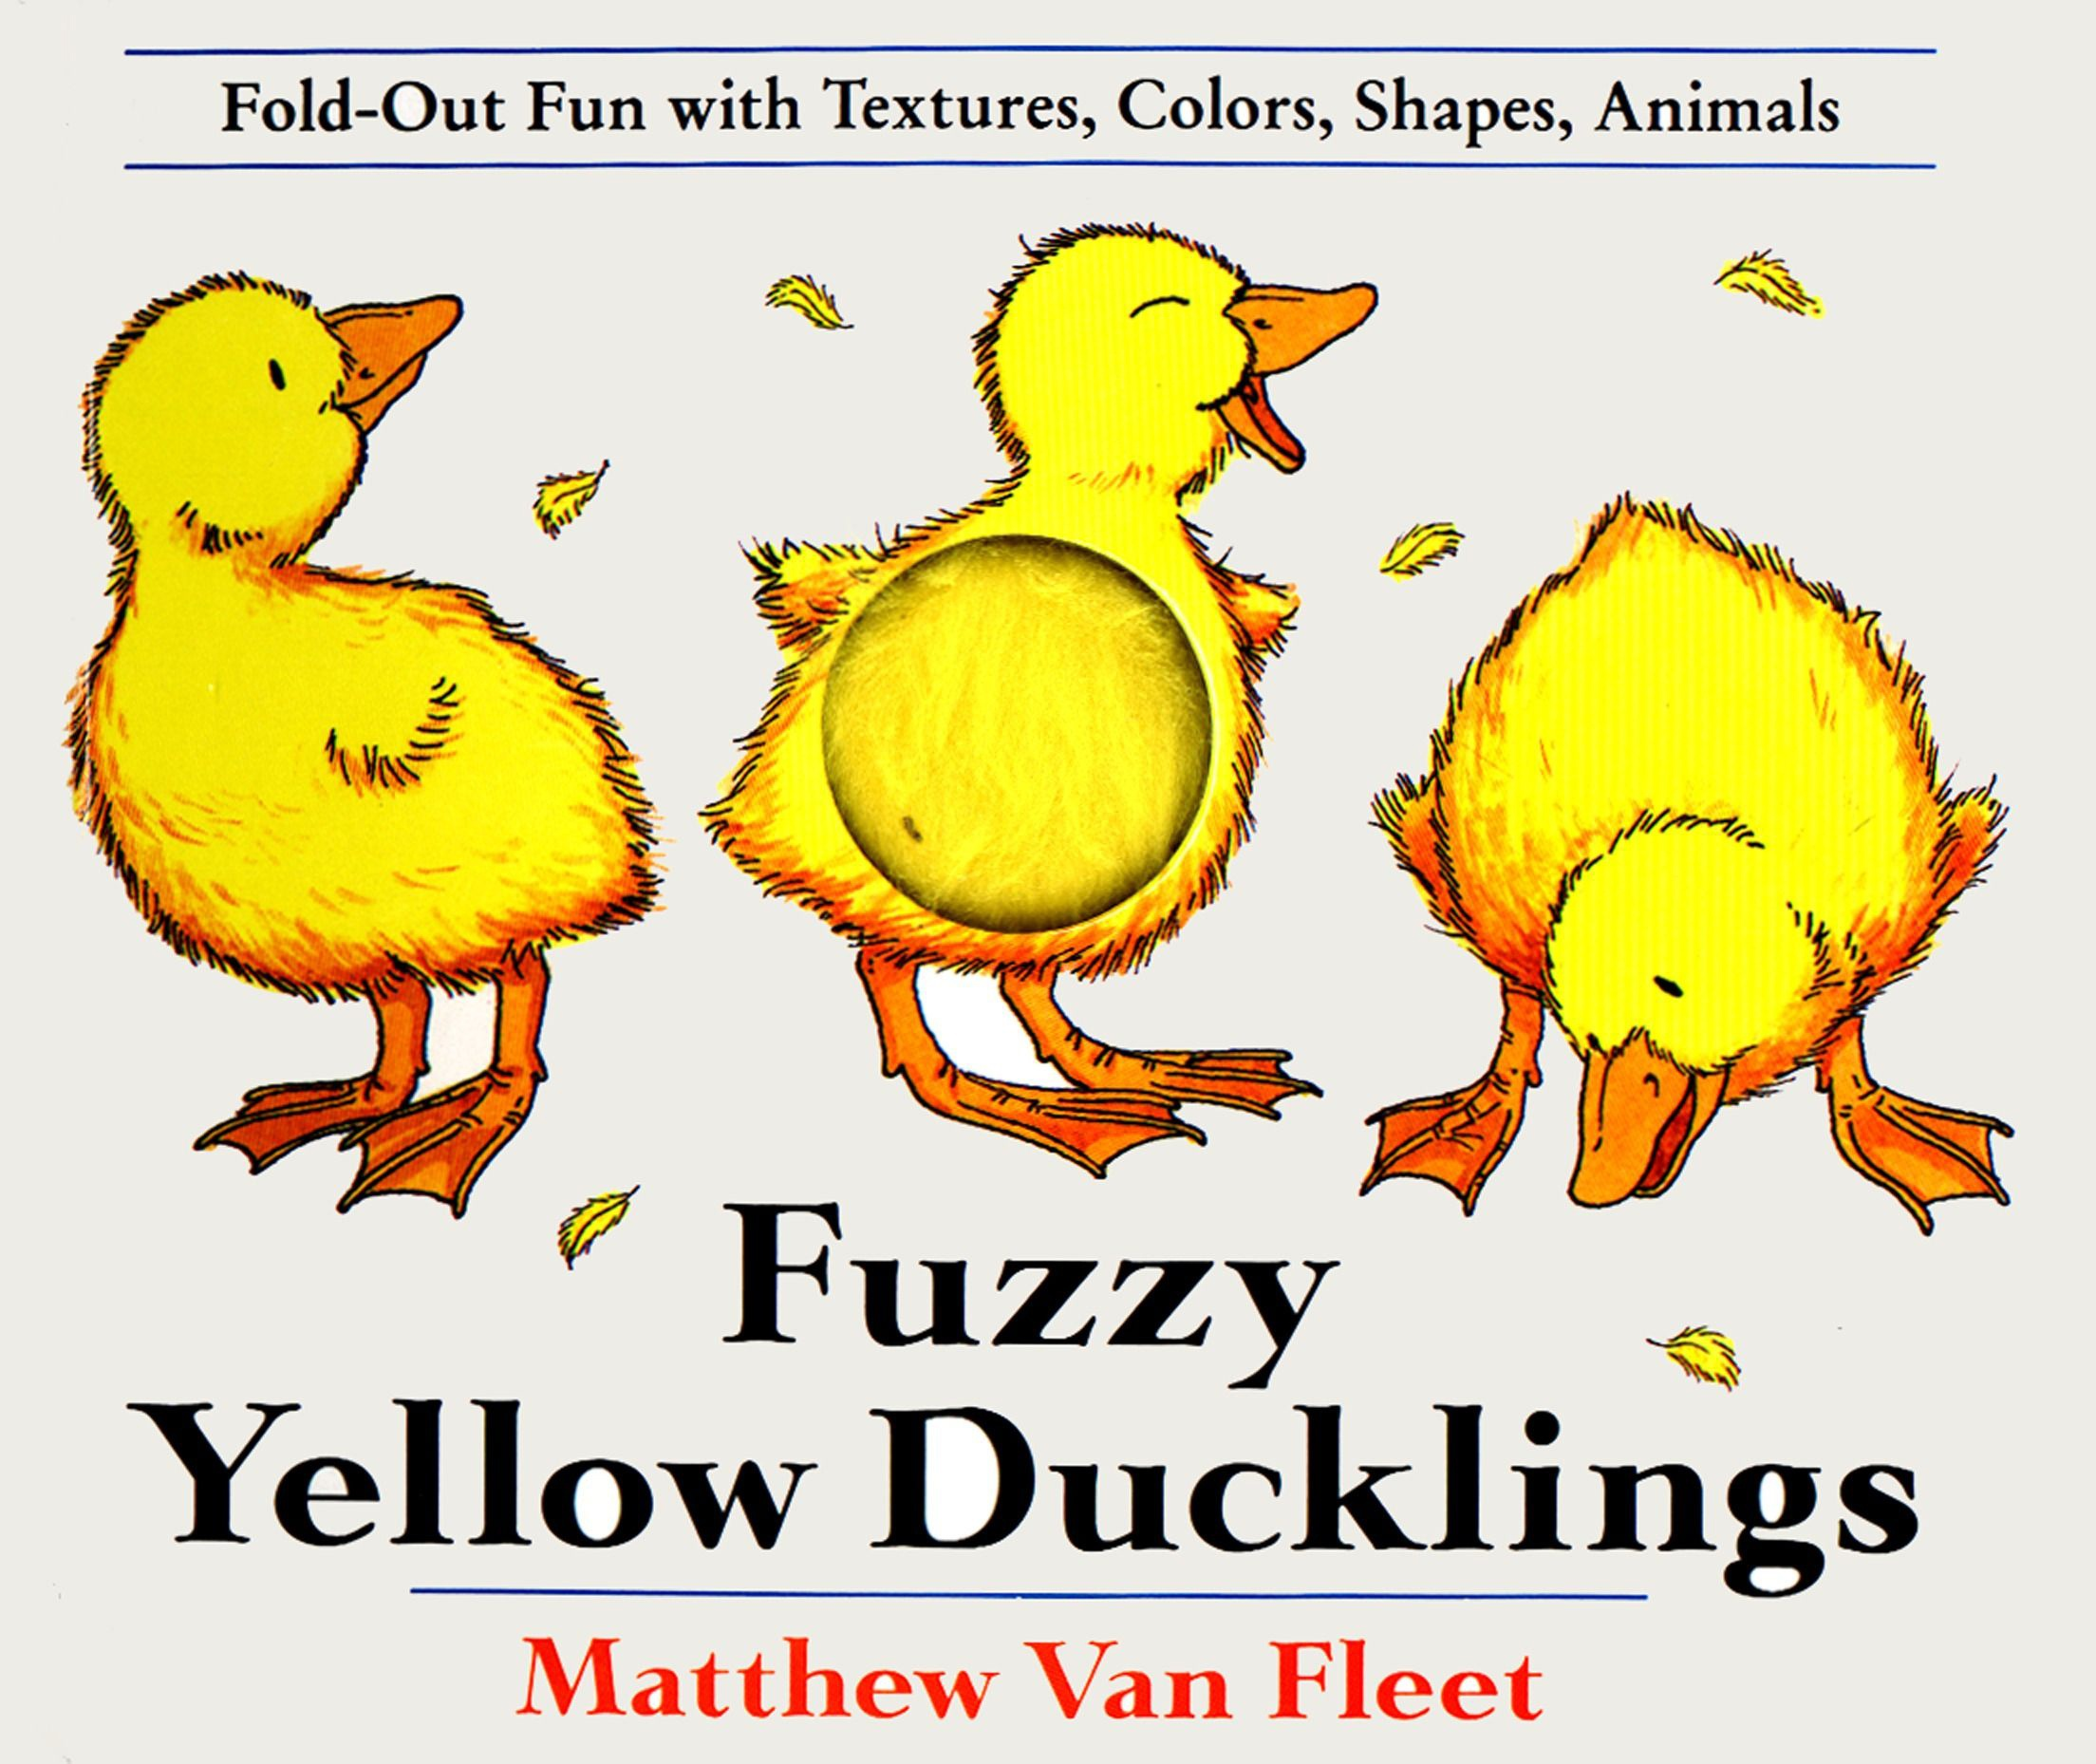 Fuzzy Yellow Ducklings: Fold-out Fun With Textures, Colors, Shapes, Animmals